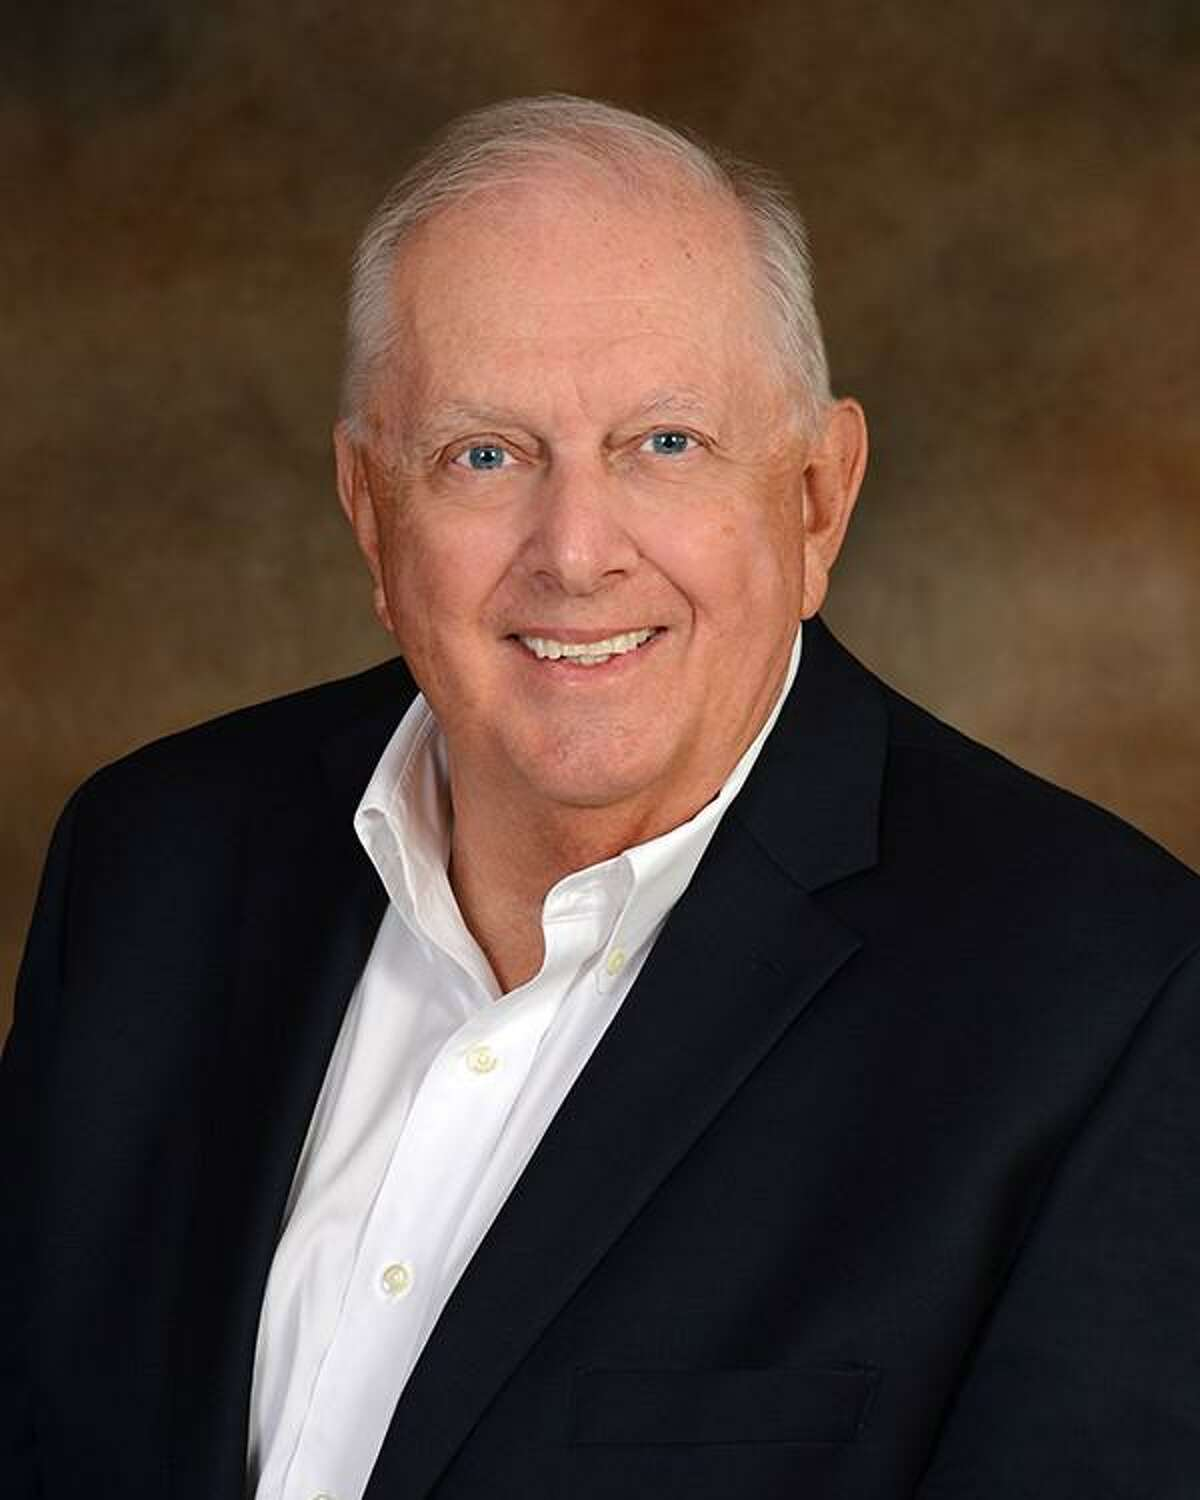 Bruce Rieser, chairman of The Woodlands One Water Task Force as well as a township director, told fellow directors on April 28 about several pressing issues as well as updates on flooding mitigation projects.